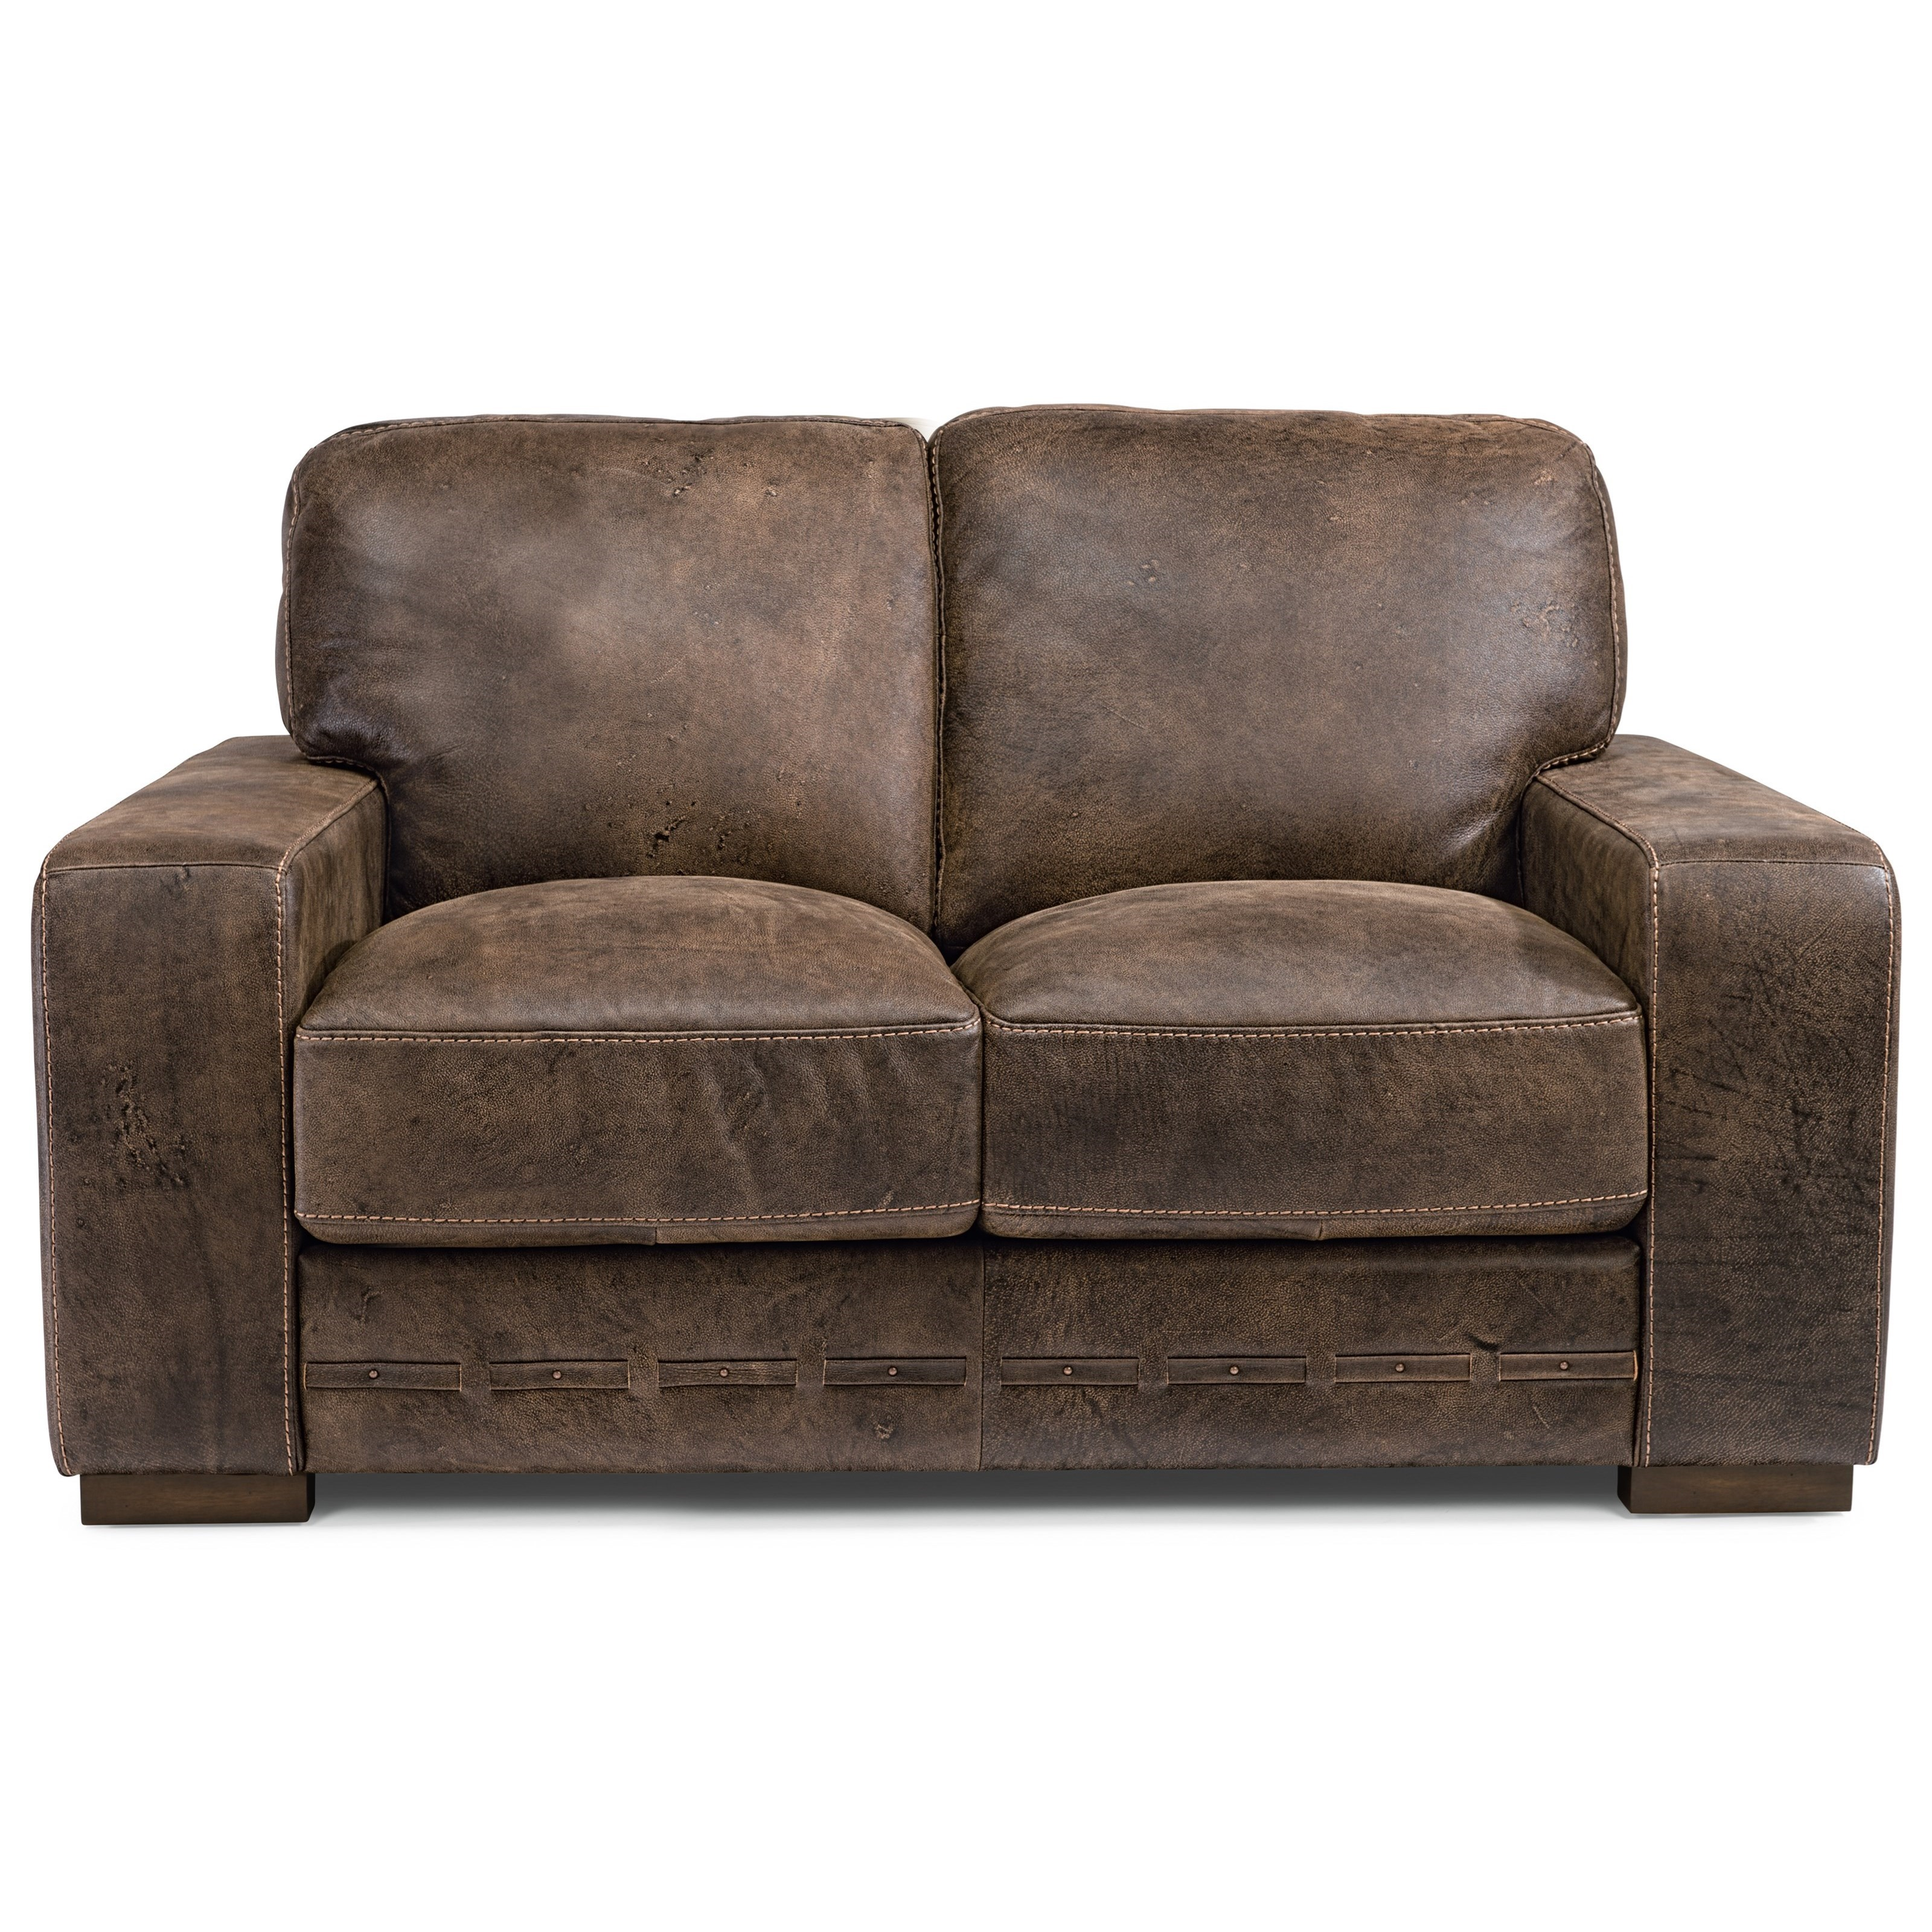 Pleasing Latitudes Buxton Contemporary Leather Loveseat By Flexsteel At Virginia Furniture Market Gmtry Best Dining Table And Chair Ideas Images Gmtryco